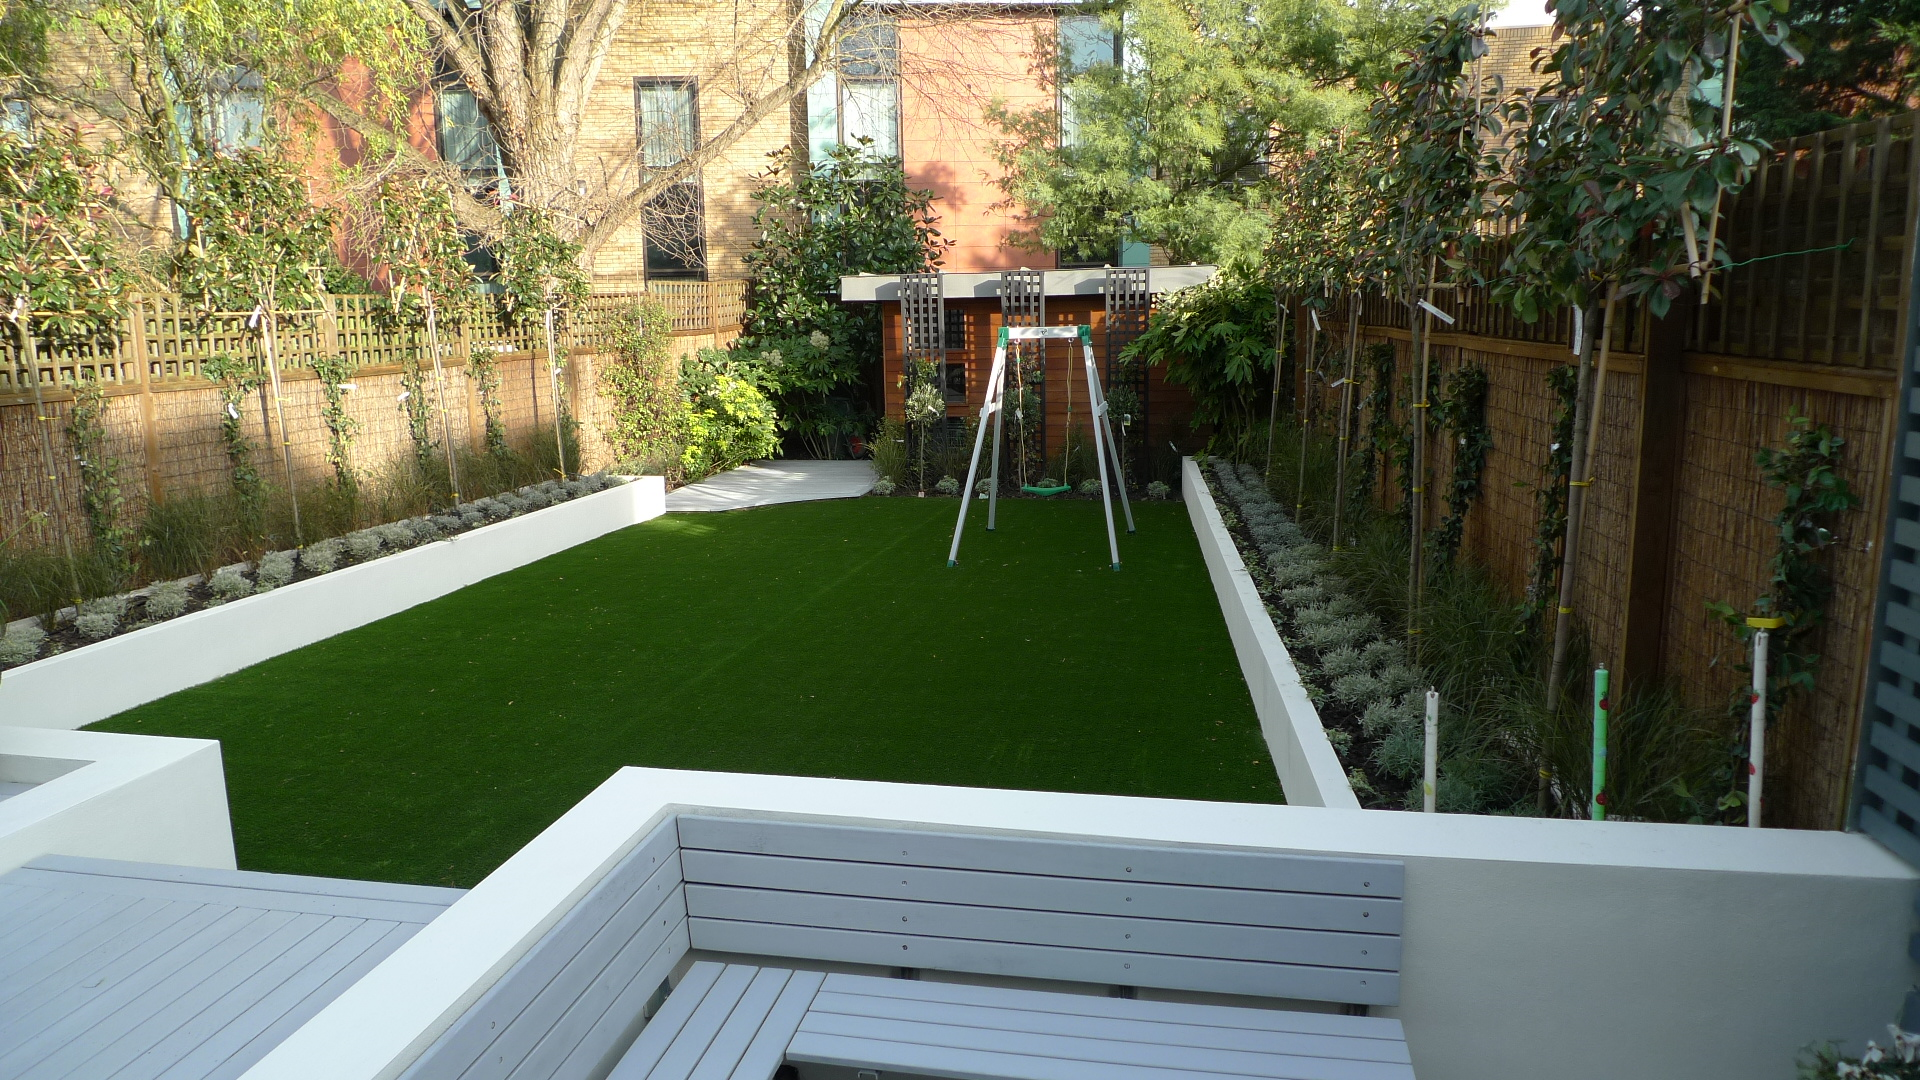 Modern garden design ideas london london garden design for Garden design ideas photos